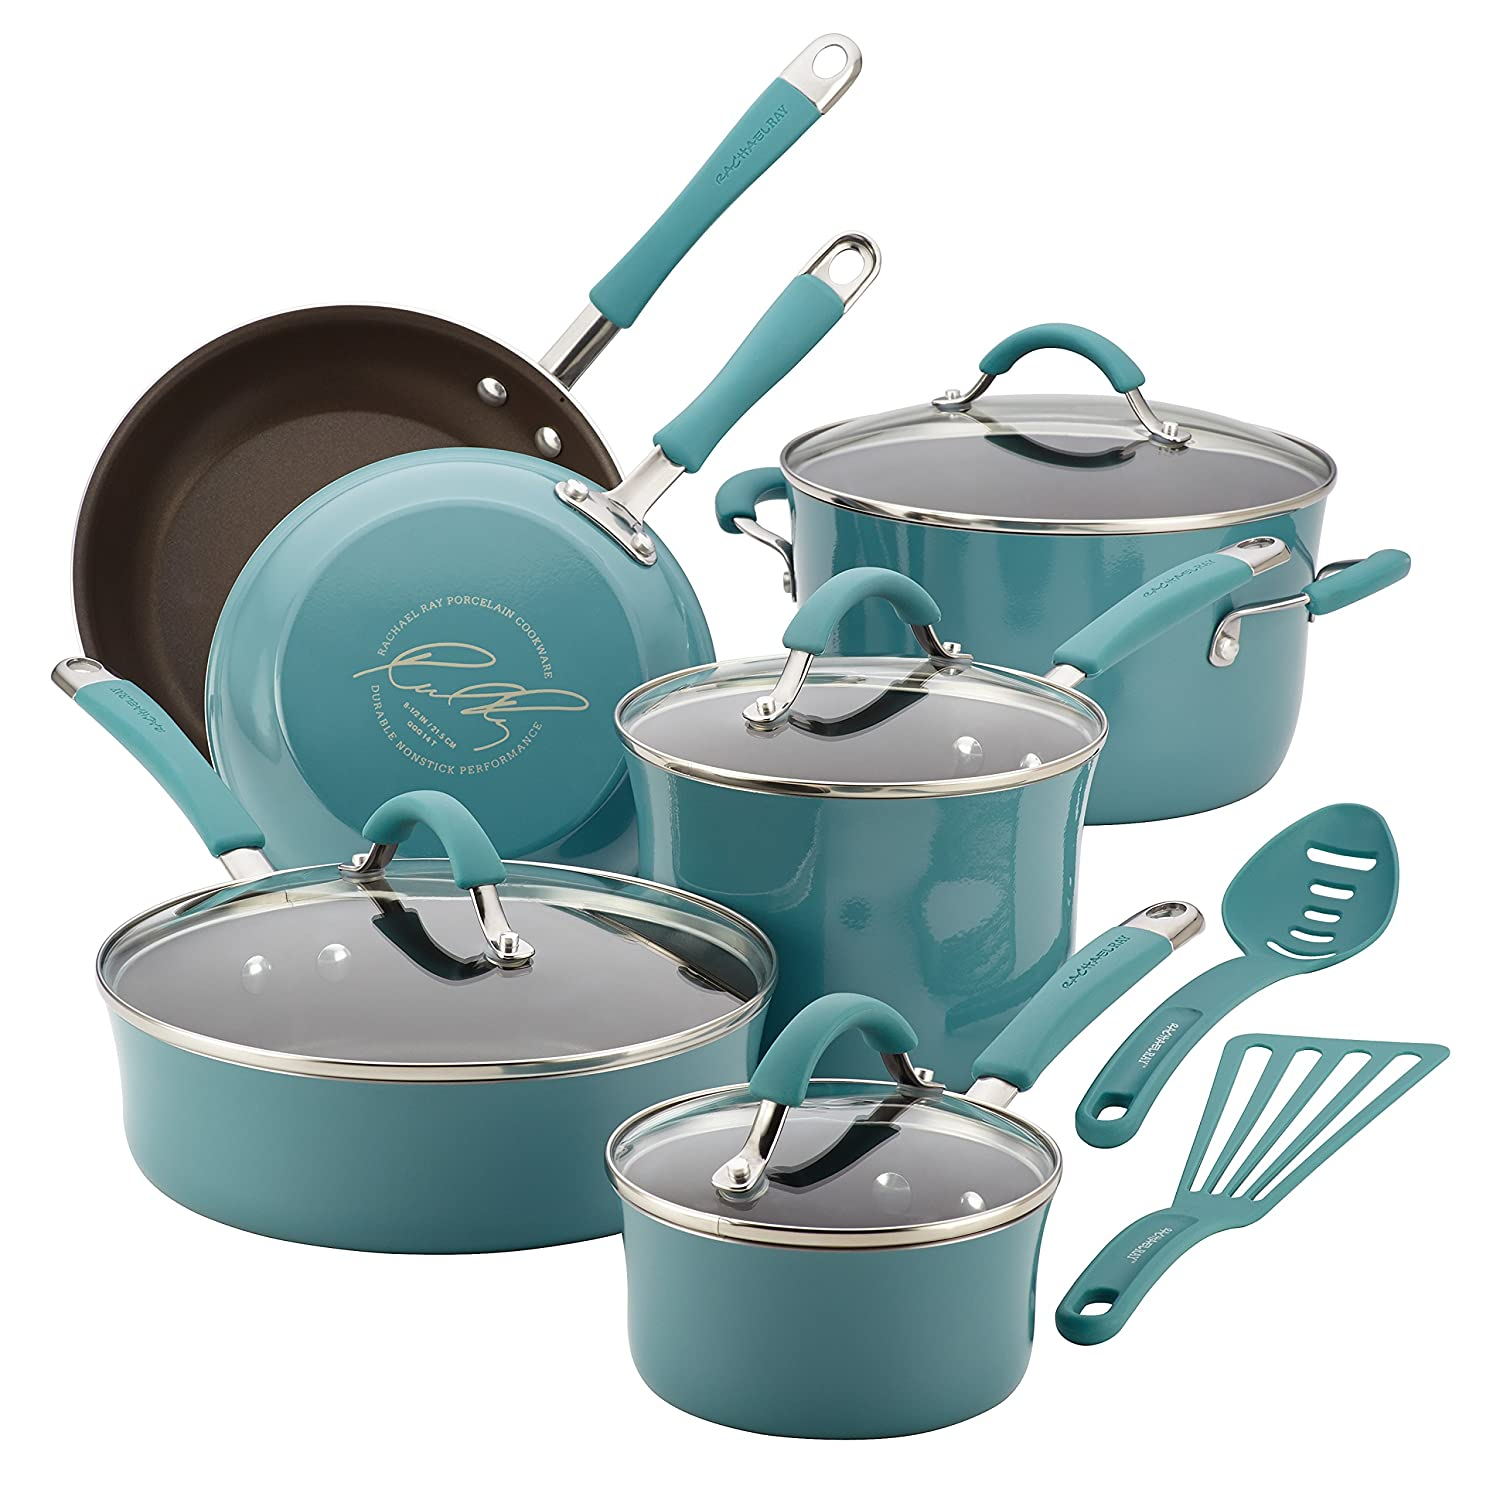 Rachael Ray Hard Porcelain Nonstick Cookware